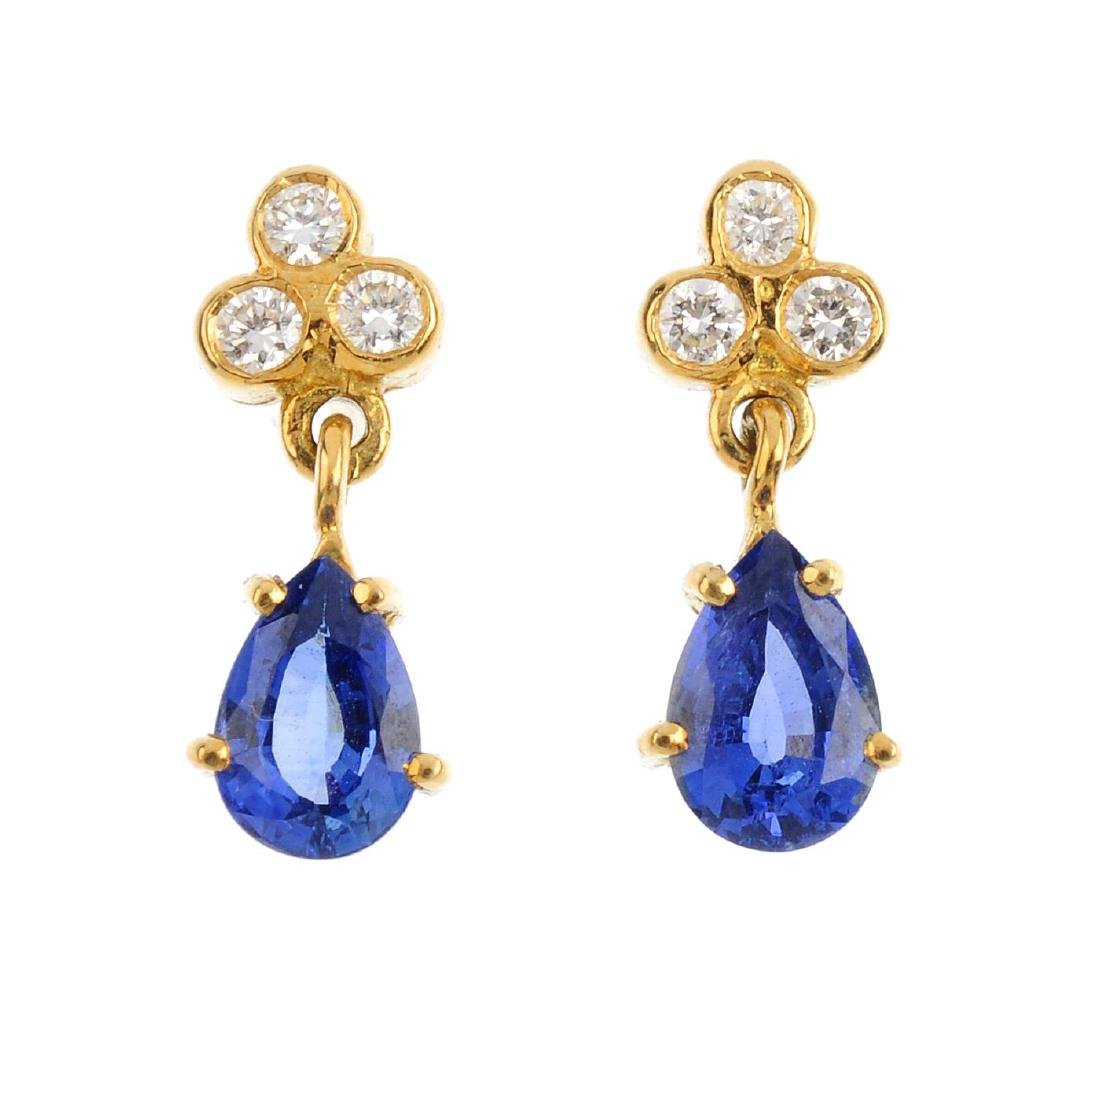 A pair of 18ct gold diamond and sapphire earrings. Each